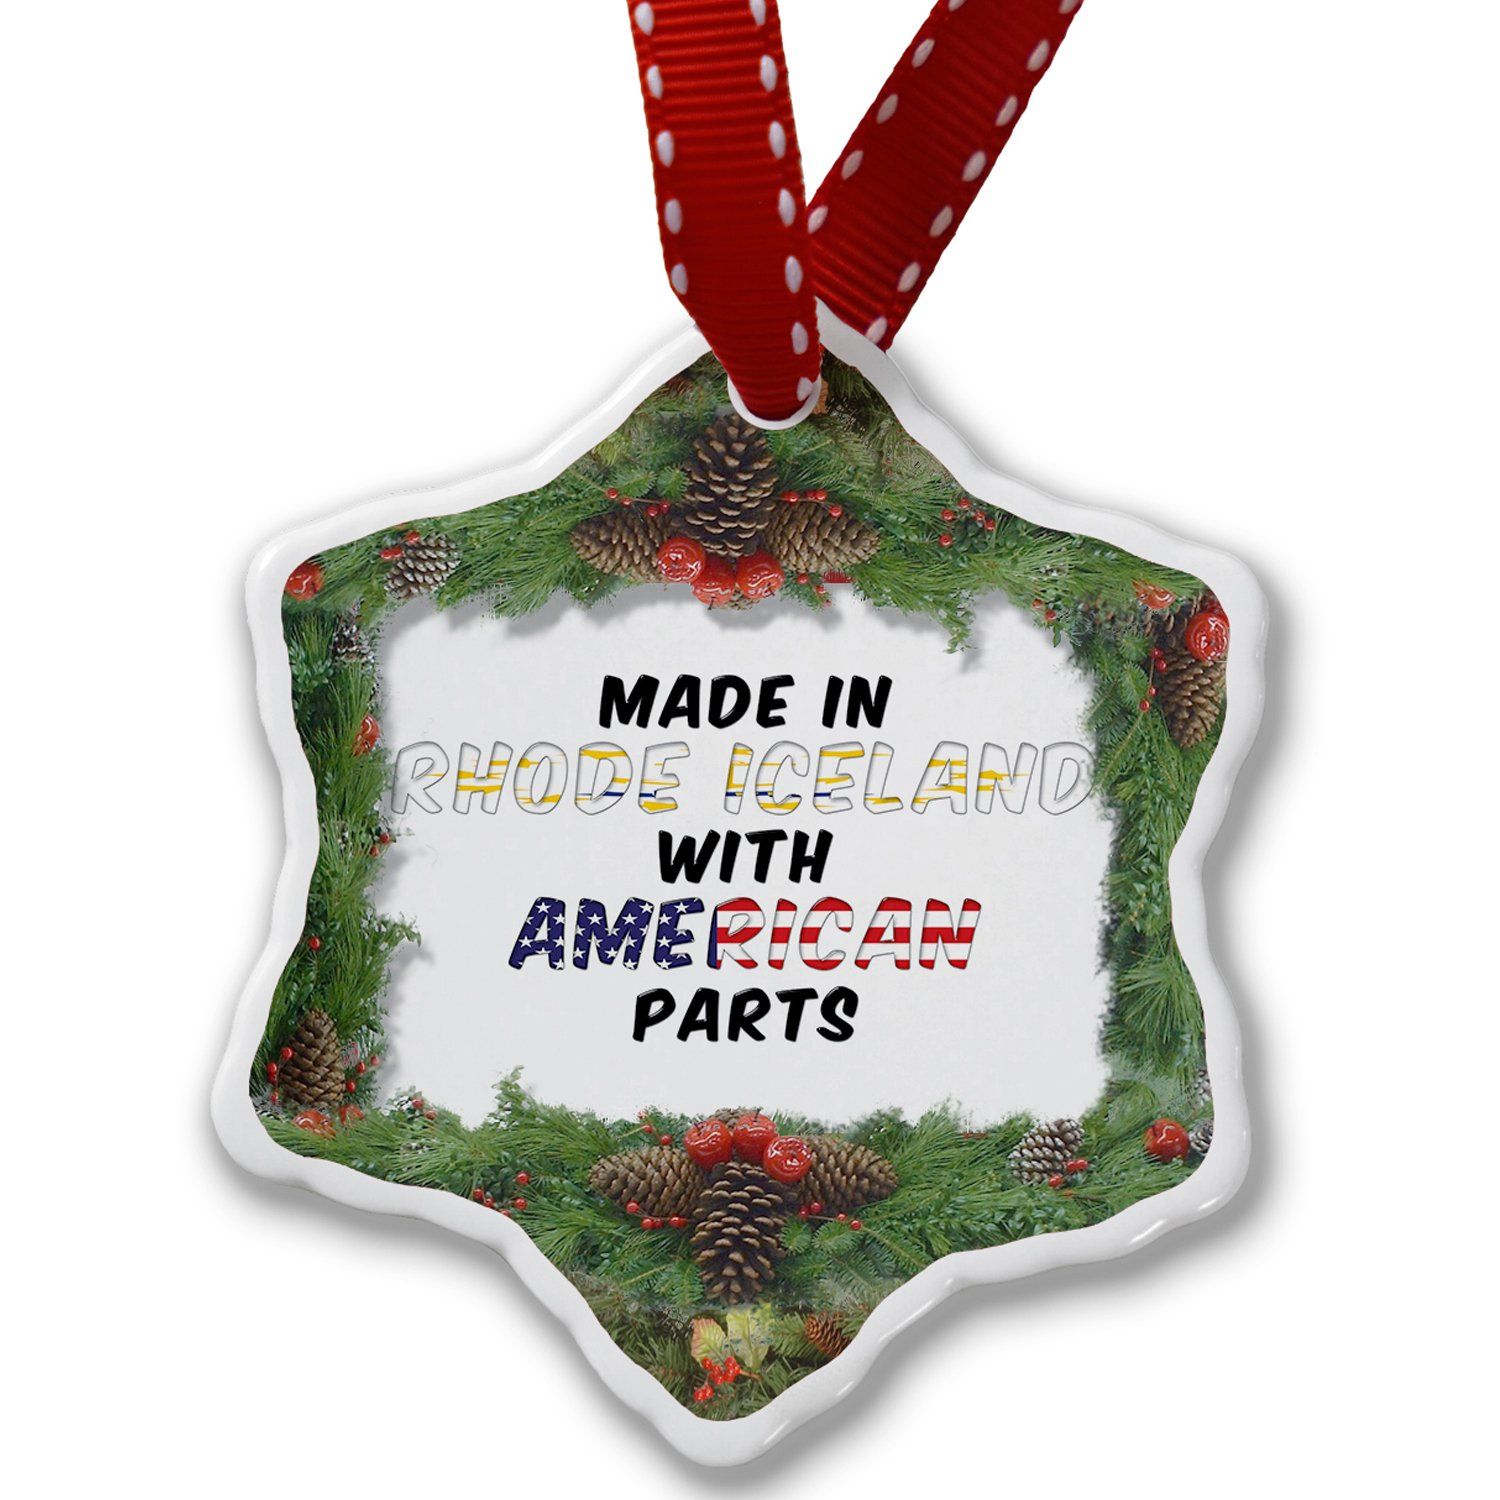 Amazon.com: Christmas Ornament American Parts but Made in Rhode ...